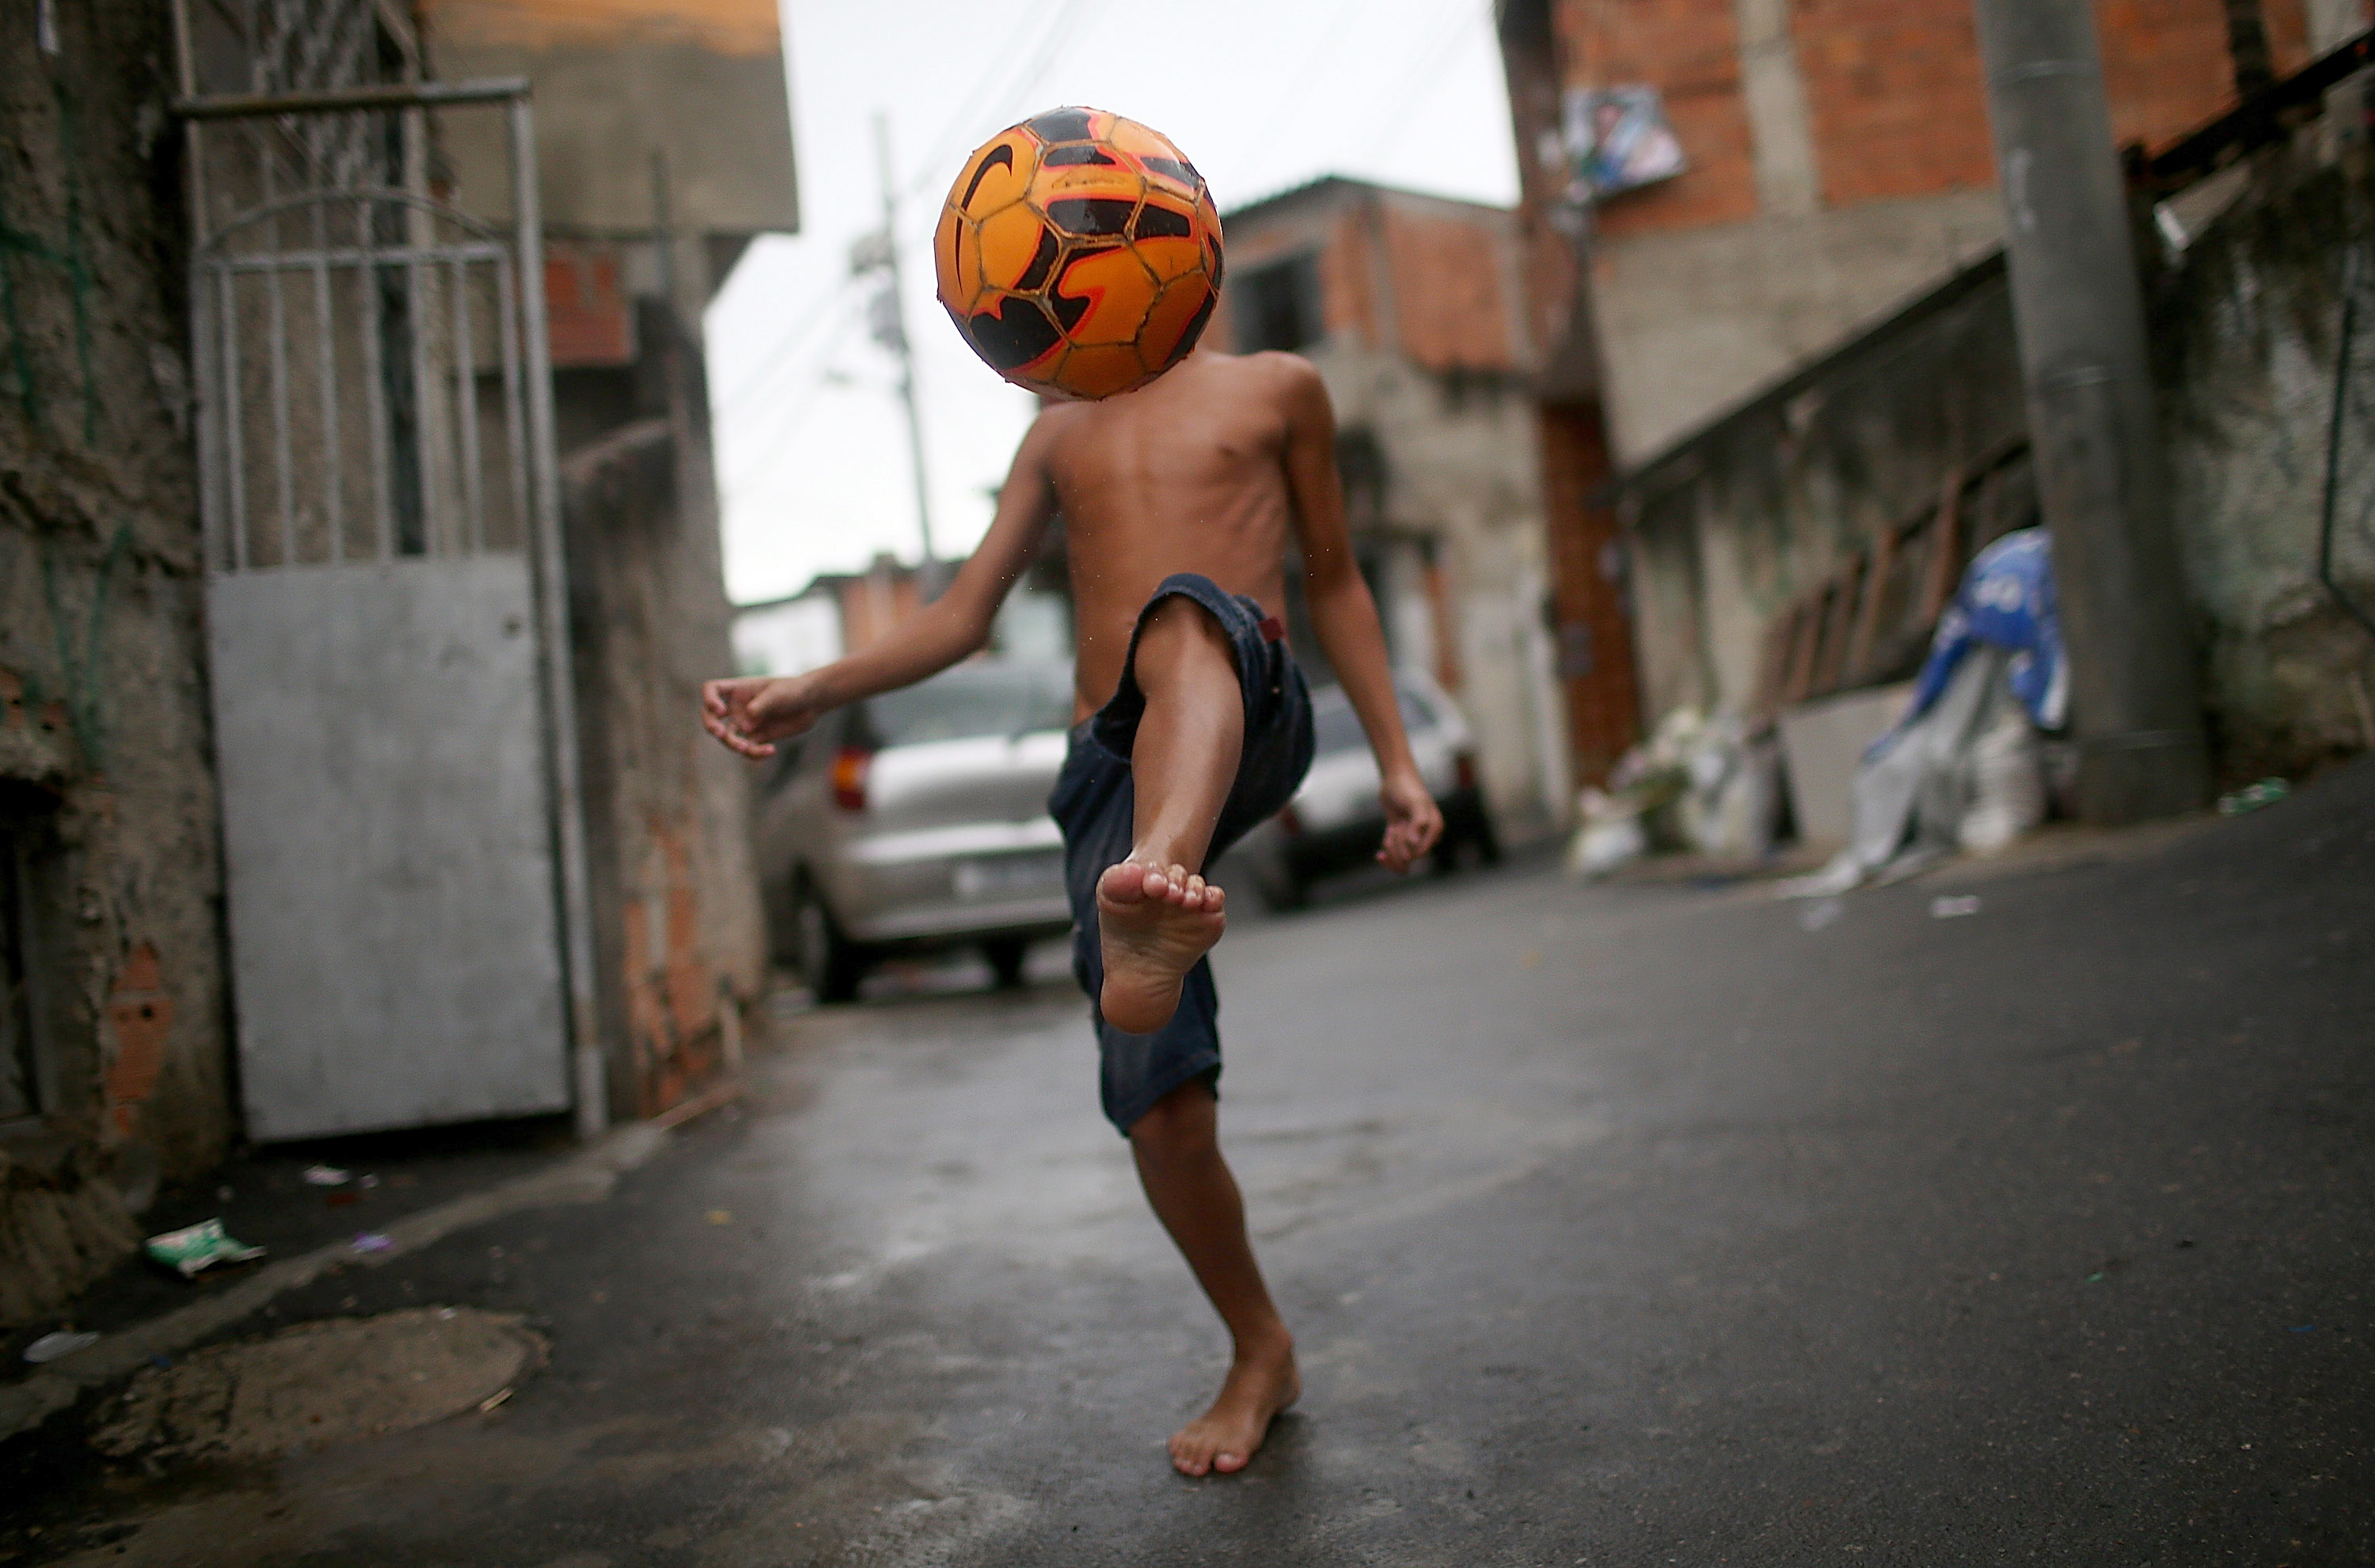 A boy shows off his soccer skills in the Complexo do Alemao pacified favela on March 23, 2014 in Rio de Janeiro.